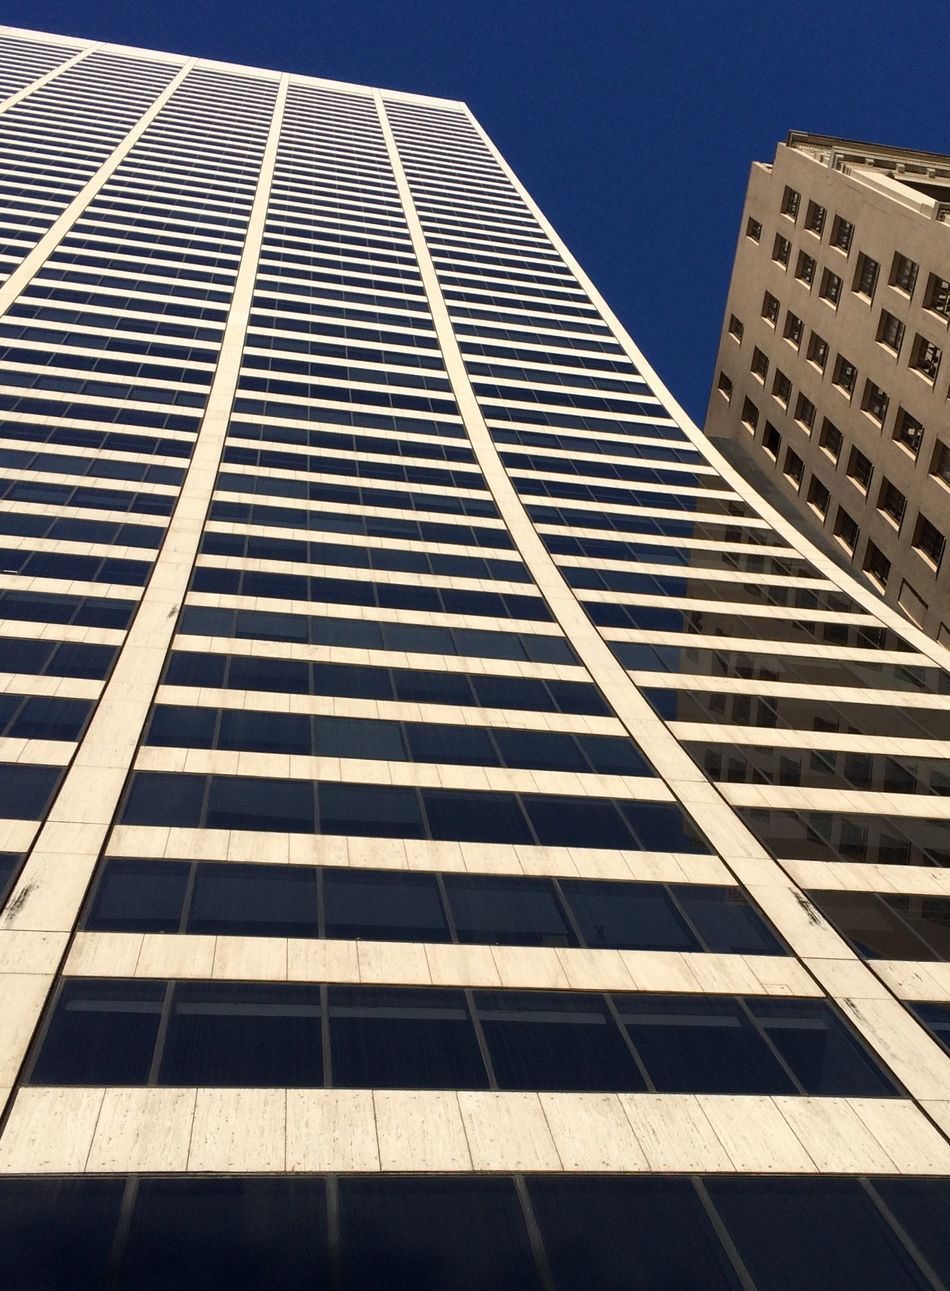 Looking up. Grace building and deep blue sky in New York. Architecture Architecture_collection Grace Building  Blue Sky Lines Lookingup My City New York I-phone Photography Building Exterior Building Buildings Abstract EyeEm Best Shots EyeEm Gallery No People Nophotoshop IPhoneography IPhone Edificio Edificios Y Fachadas Arquitectura Lineas Learn & Shoot: Leading Lines Urban Geometry